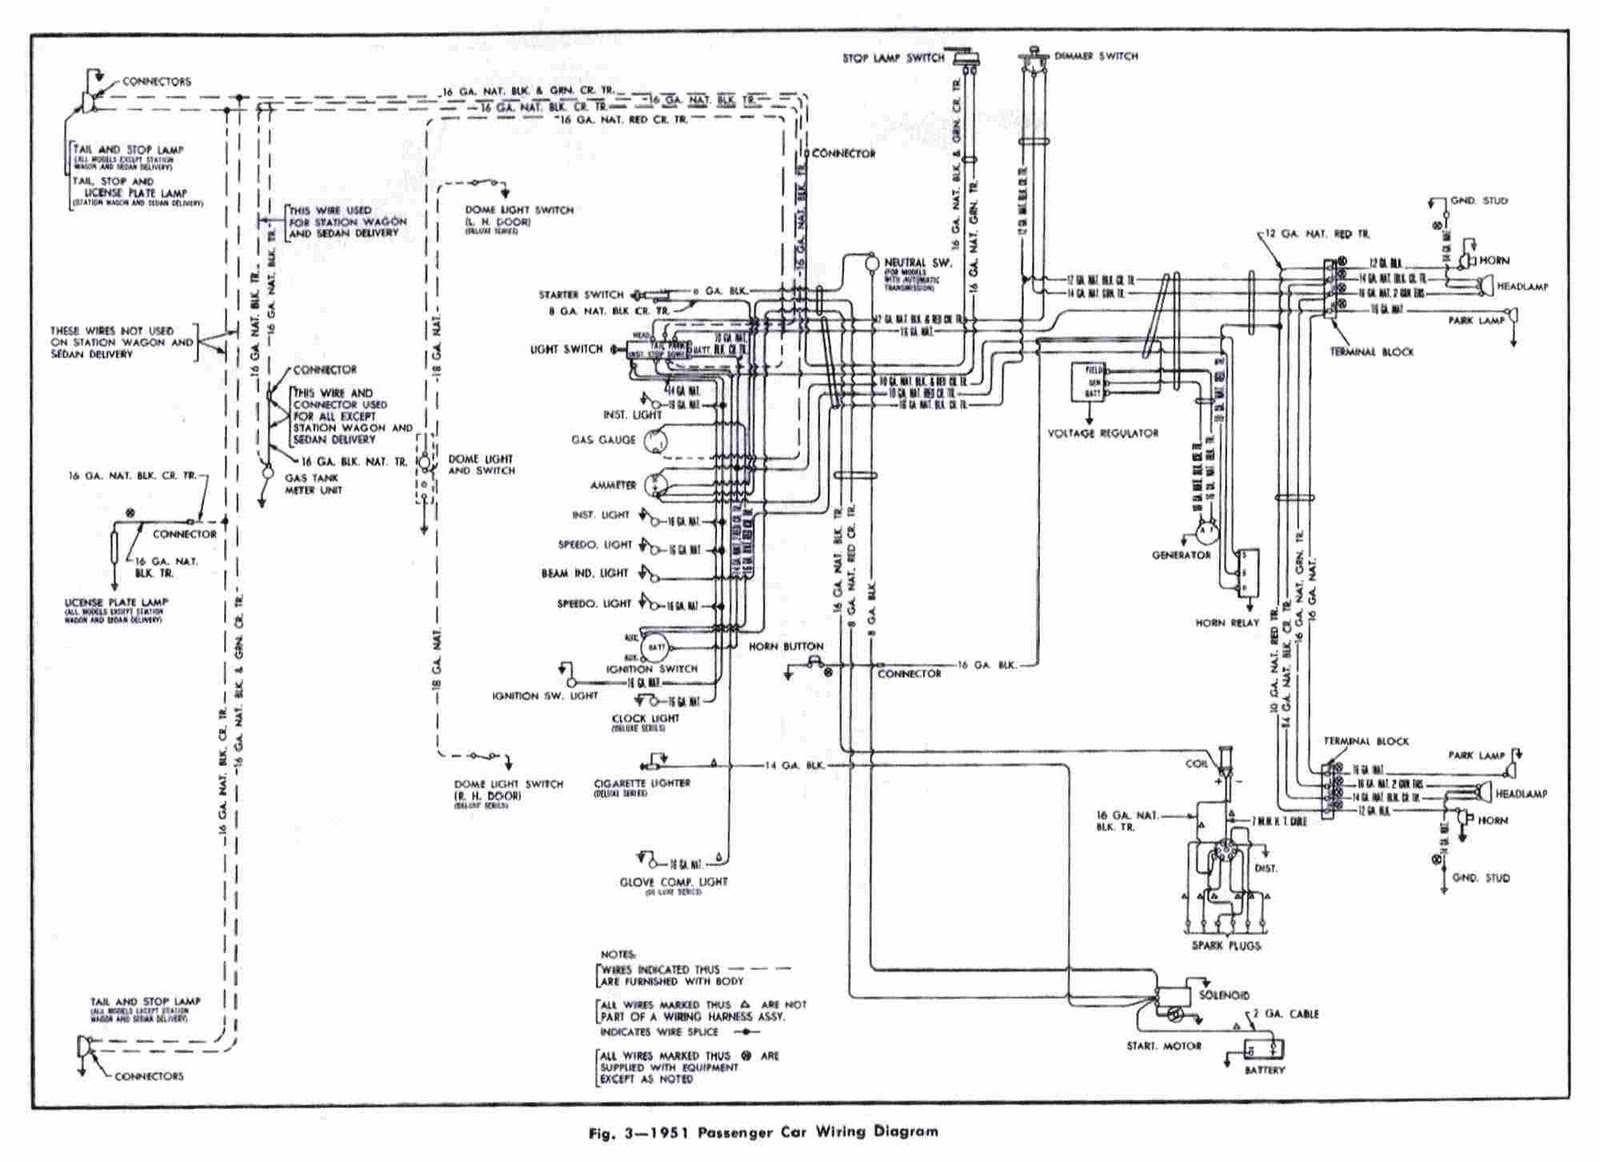 Electricity additionally 83 Buick Wiring Diagram further Car Service Diagram furthermore What Is Emf 101 Report besides Floor Plan. on electrical wiring diagram for buildings